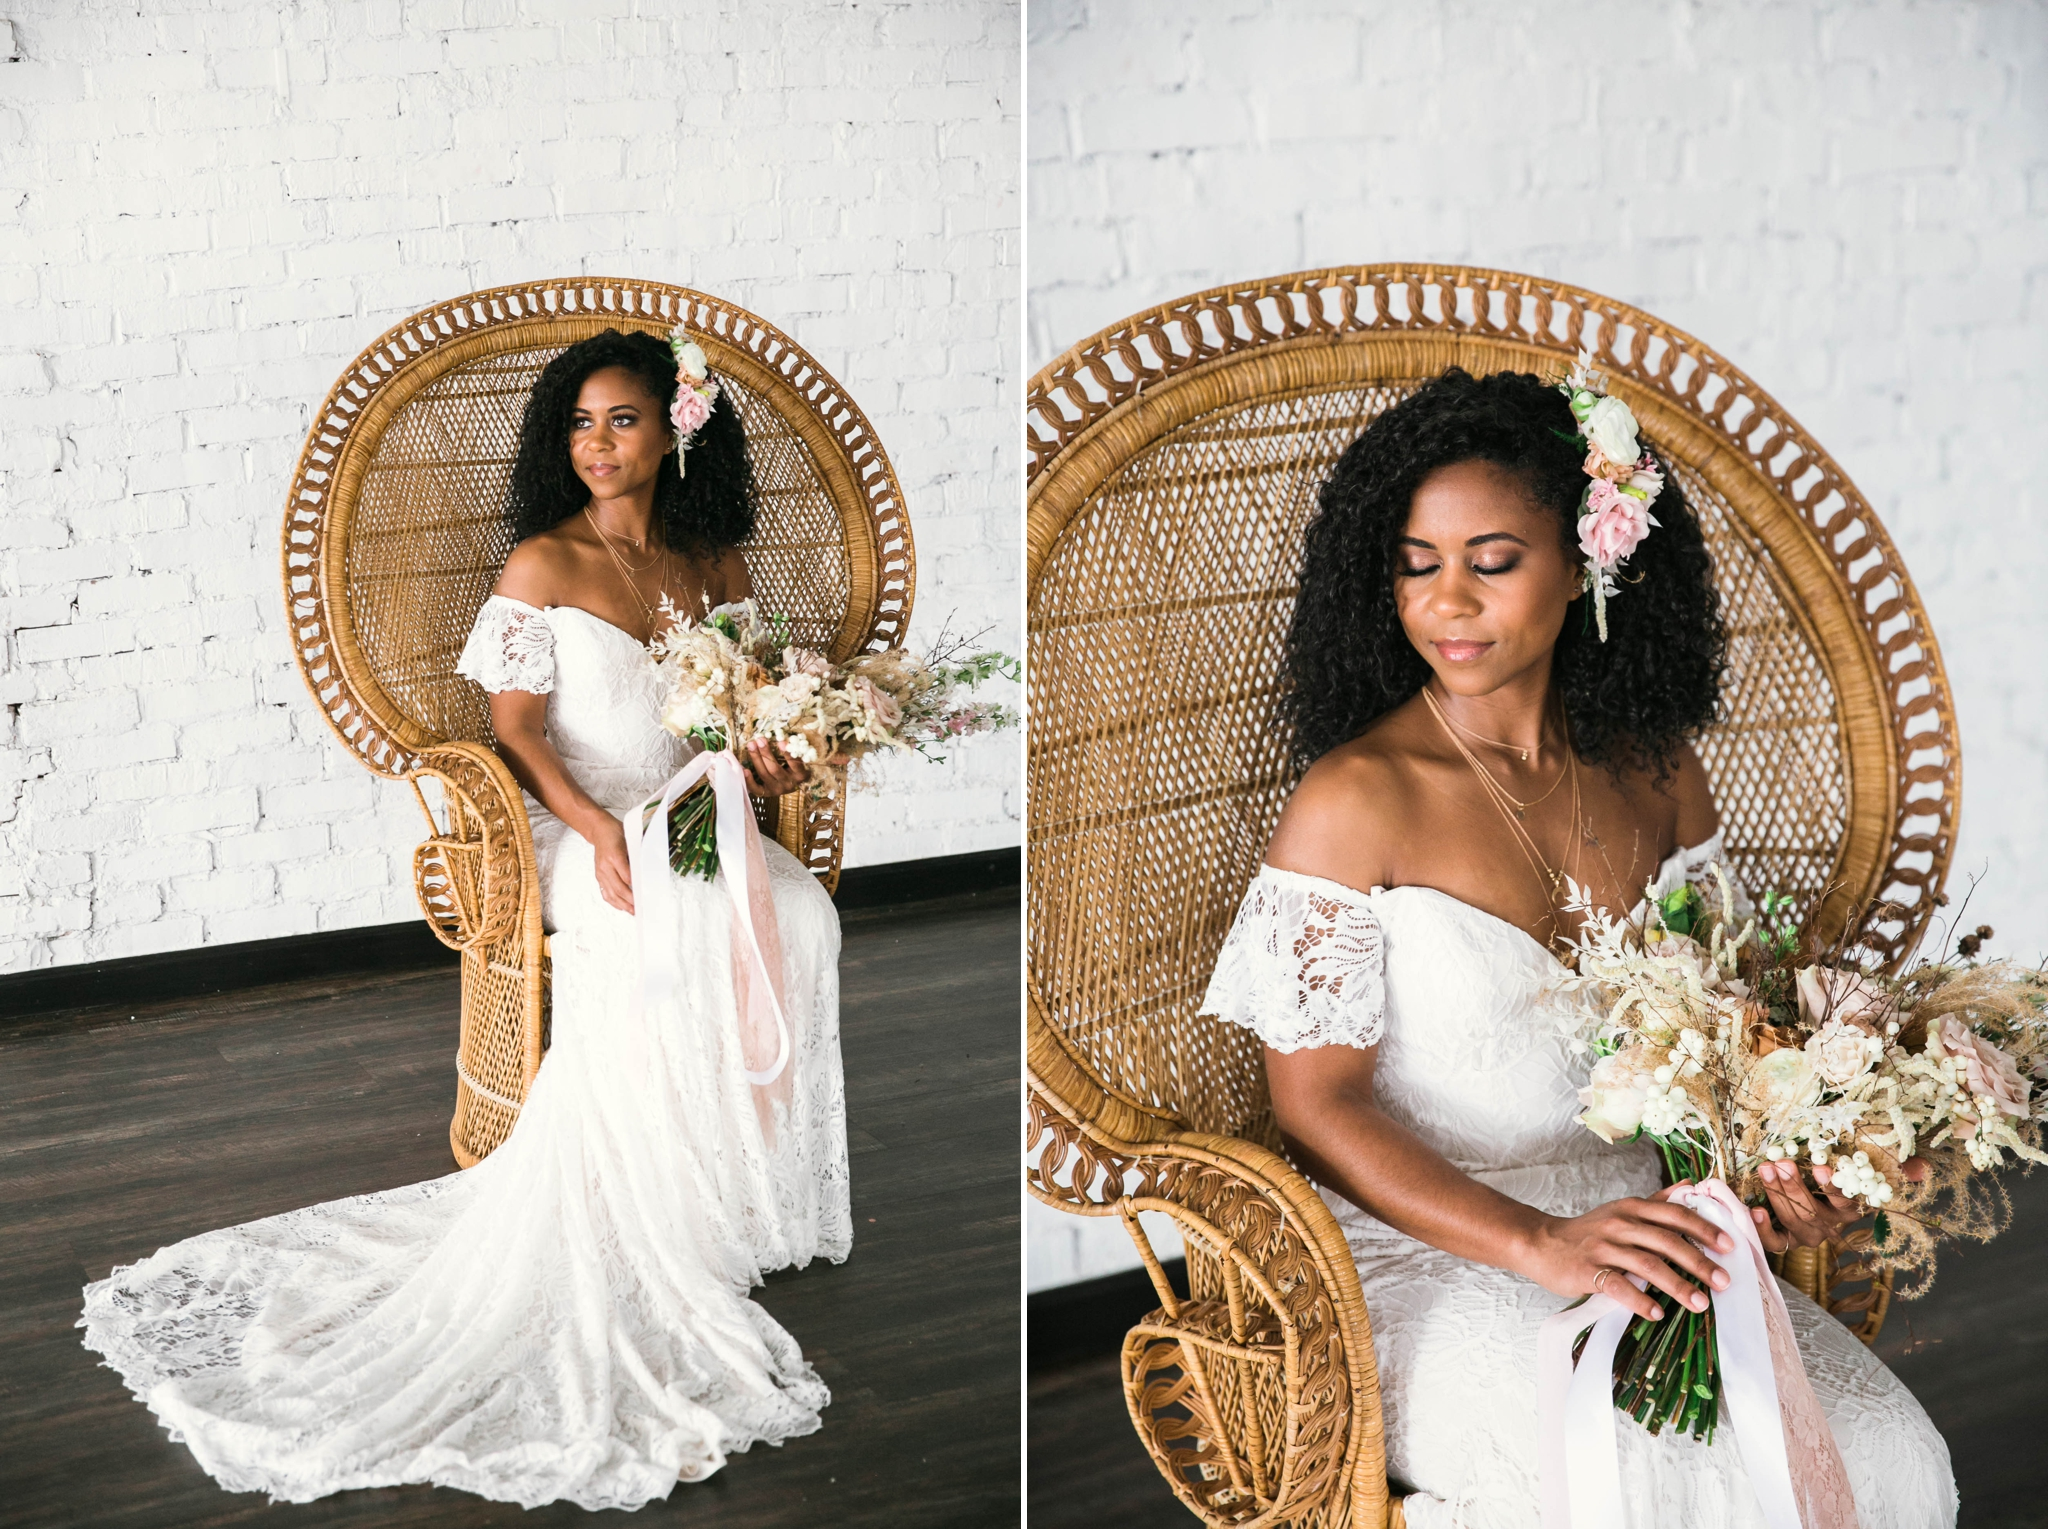 Indoor Wedding Portraits, shot with natural light - black love - african american bride with natural hair sitting in a Midcentury Woven Wicker Peacock Chair in a boho wedding dress with a big bouquet - tropical inspiration - honolulu, oahu, hawaii photographer